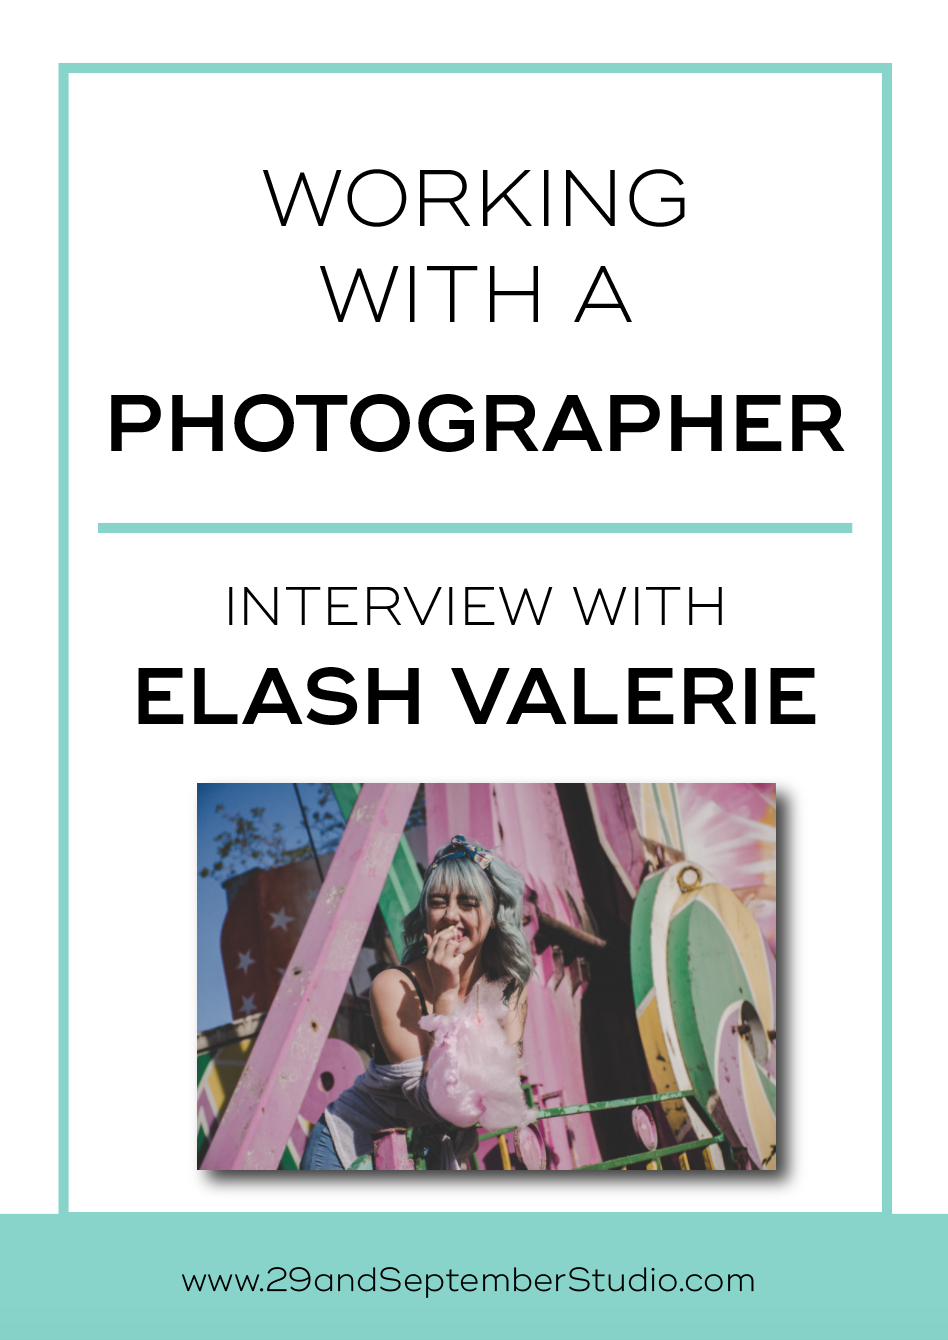 Working with a fashion photographer